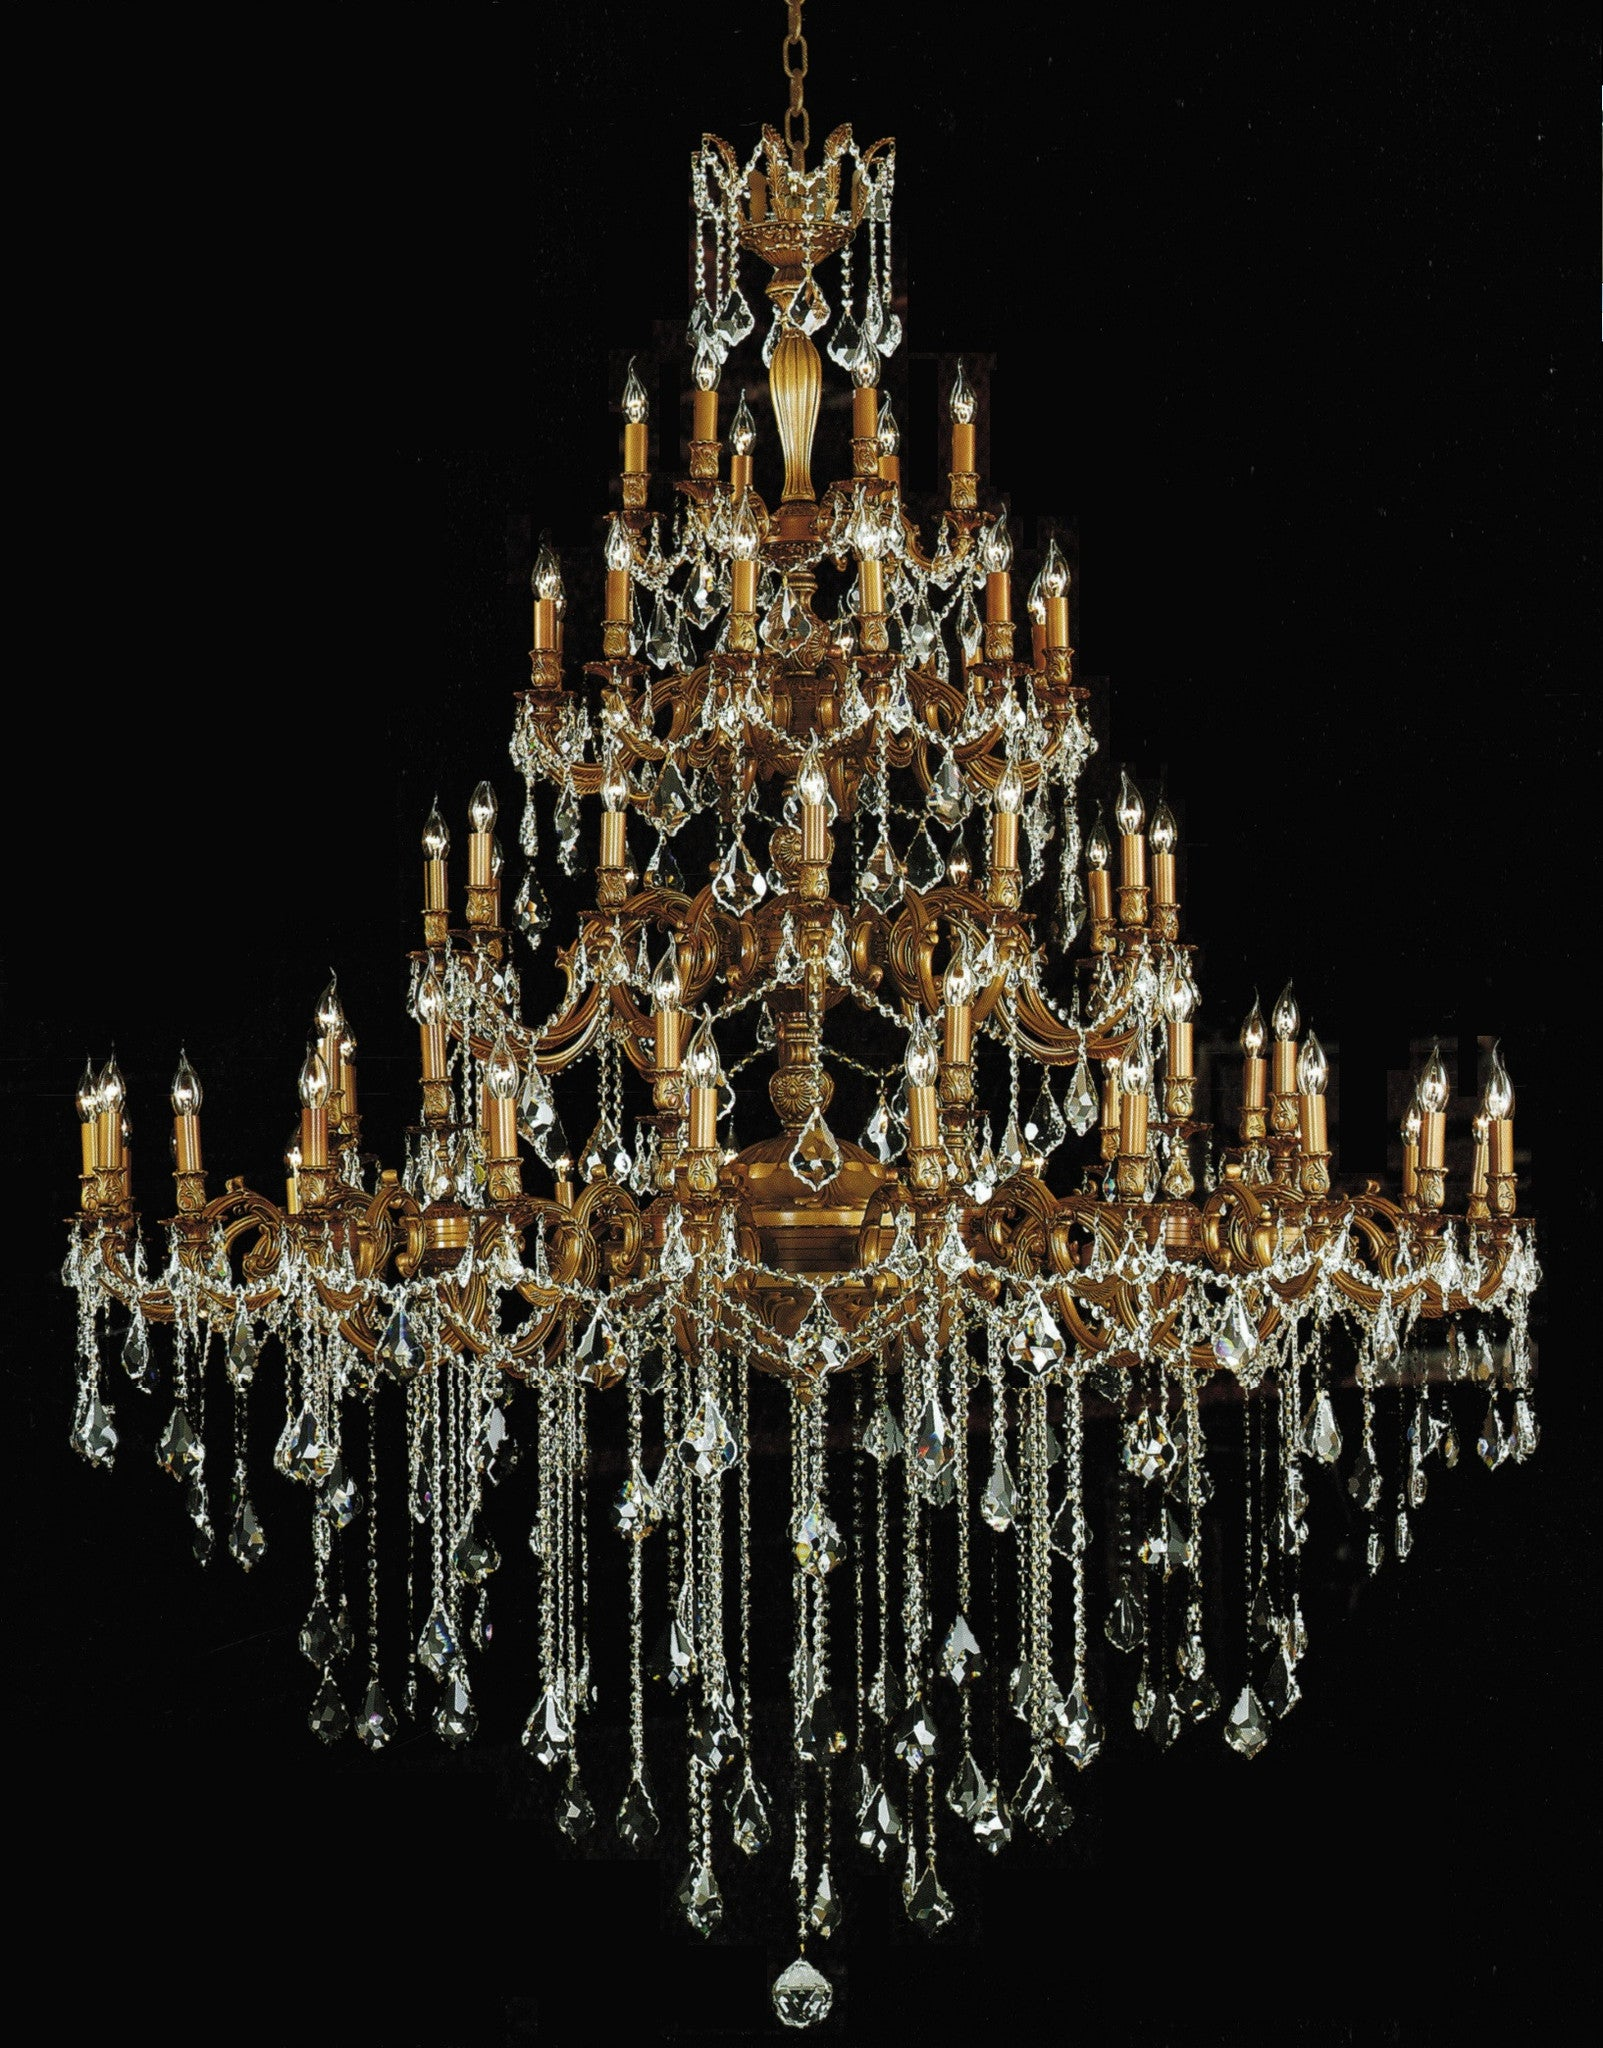 Chandelier Hire Melbourne & Sydney; Huge Chandelier